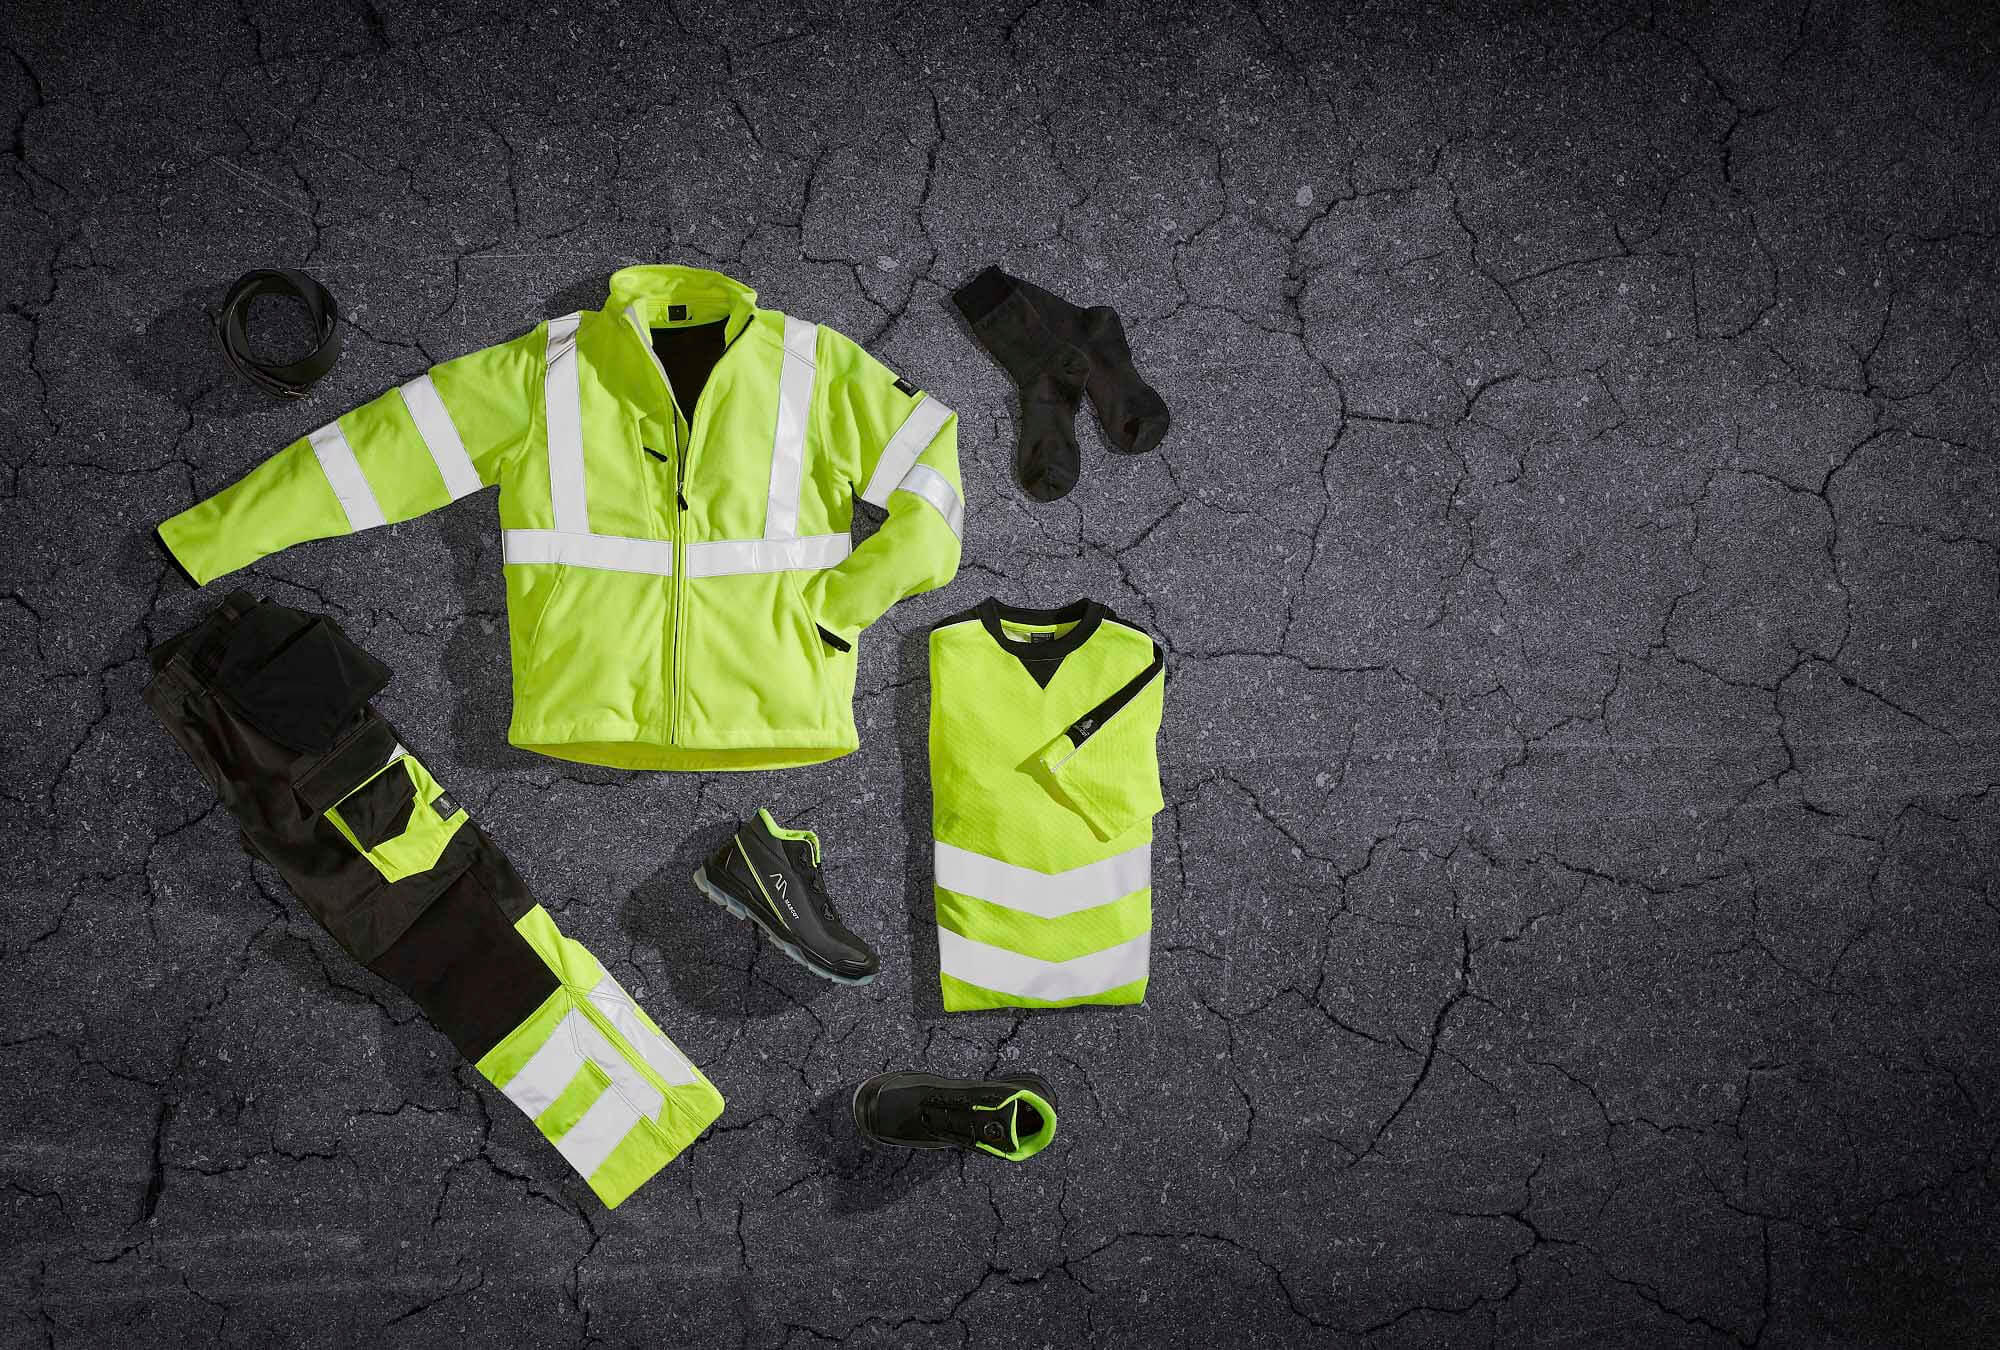 Safety clothing - Fluorescent yellow - Collage